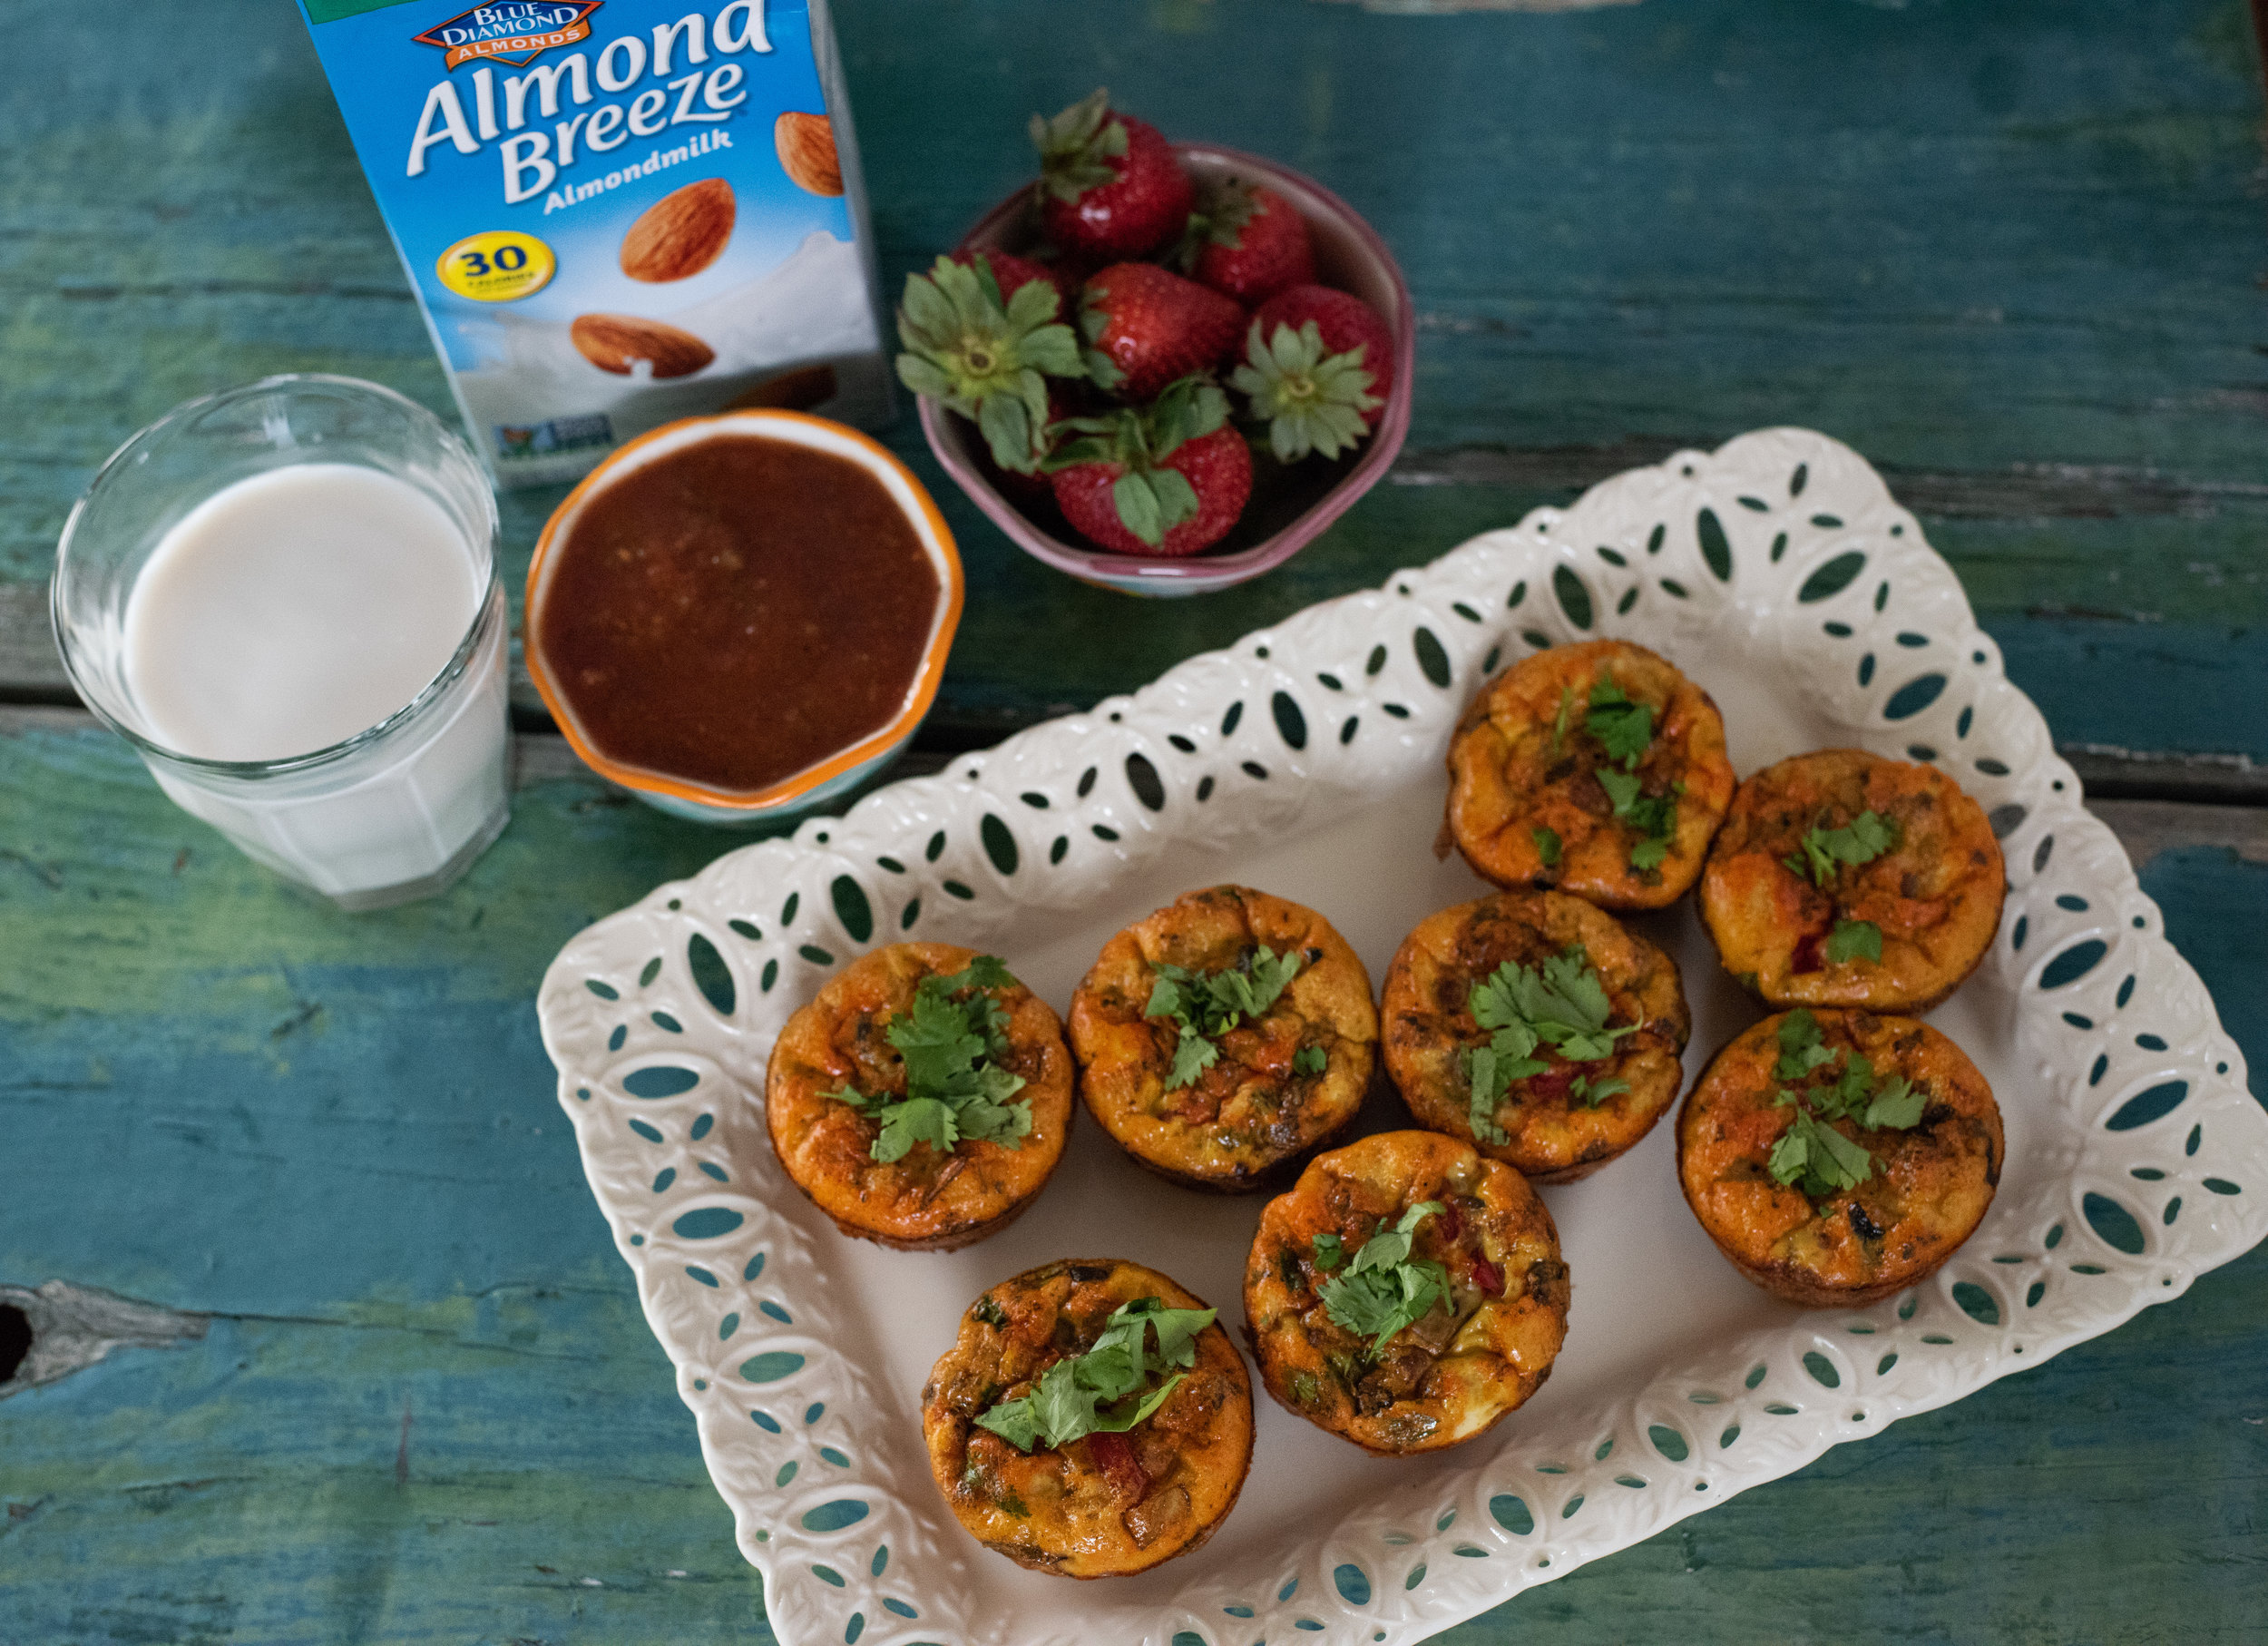 Chorizo Veg Frittatas with Almond Breeze